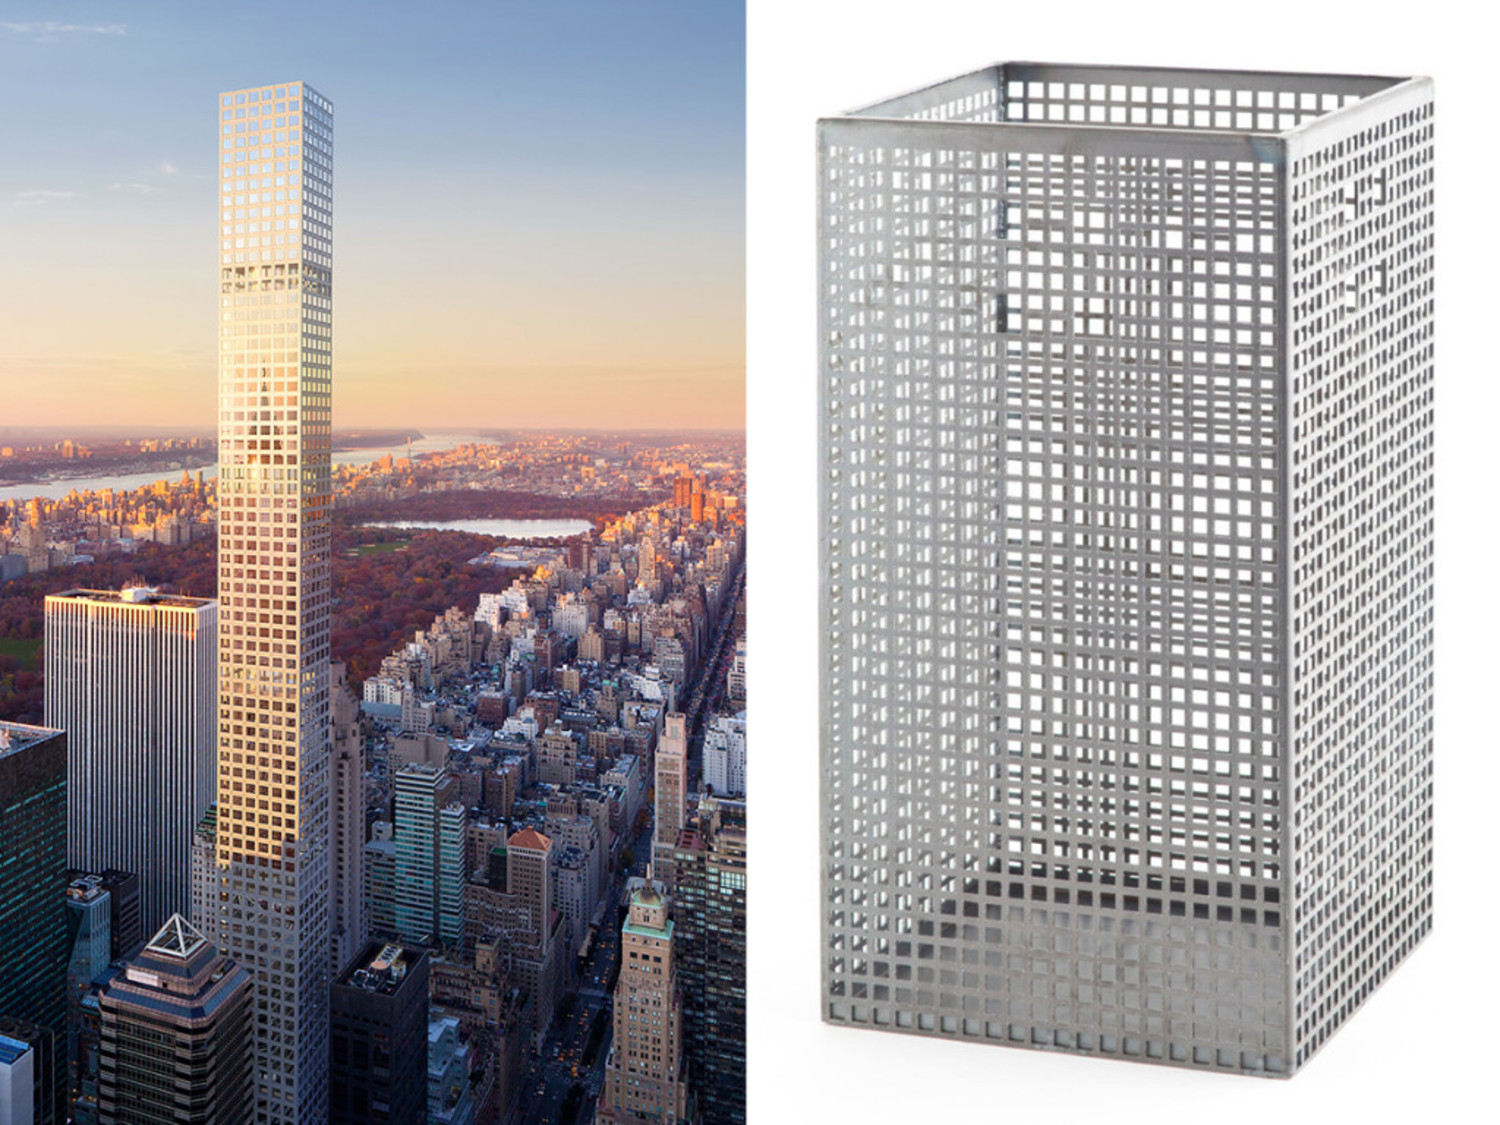 432 Park Avenue is the tallest residential building in the Western Hemisphere. It was inspired, say the architect and developer, by this 1905 trash can by Austrian designer Josef Hoffmann.